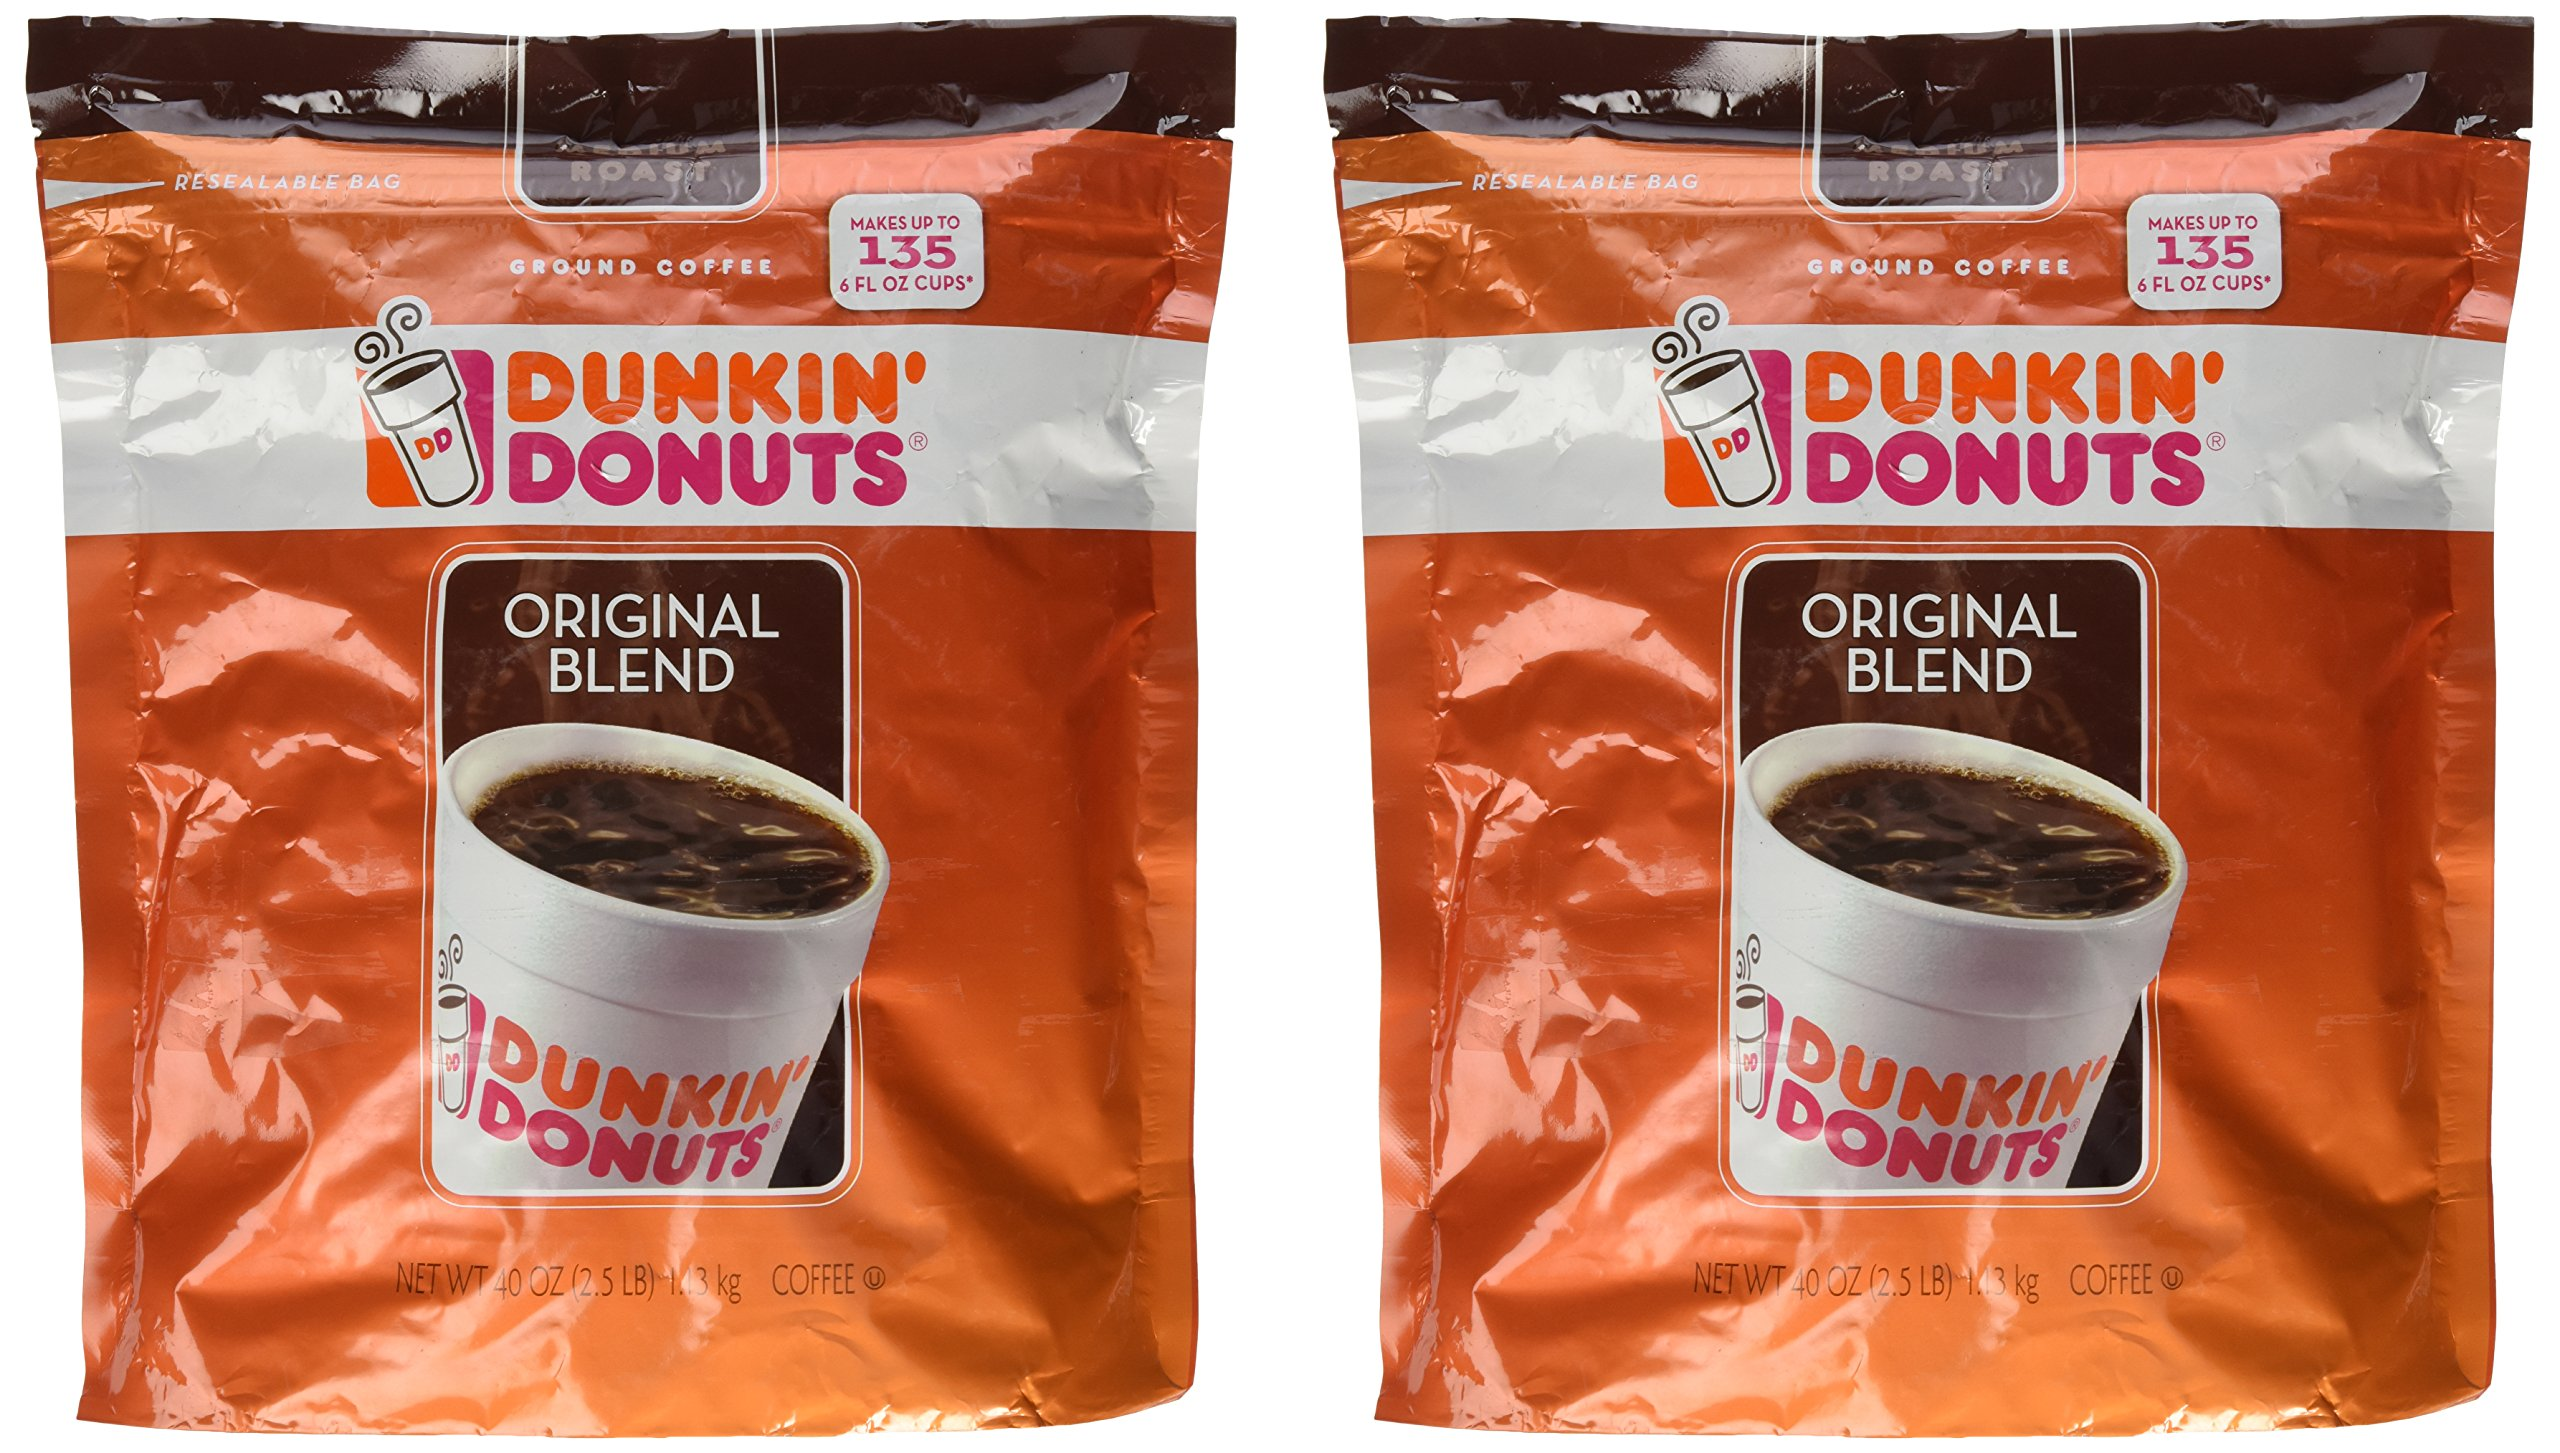 Dunkin' Donuts Original Blend Coffee 40oz - 2 Bags Of 40 oz each